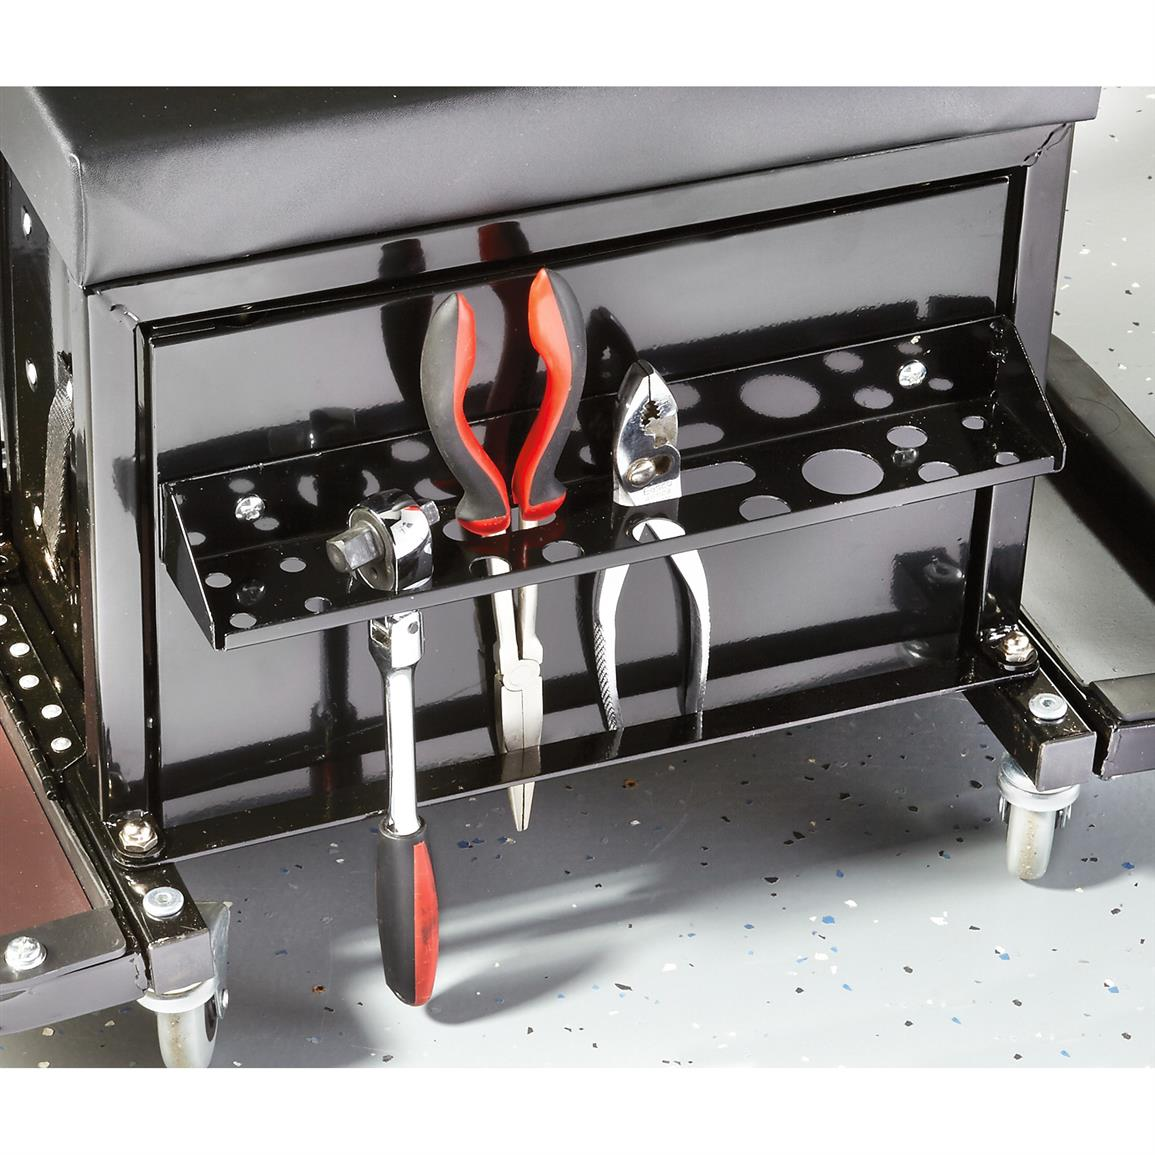 Rear tray supports screwdrivers and pliers